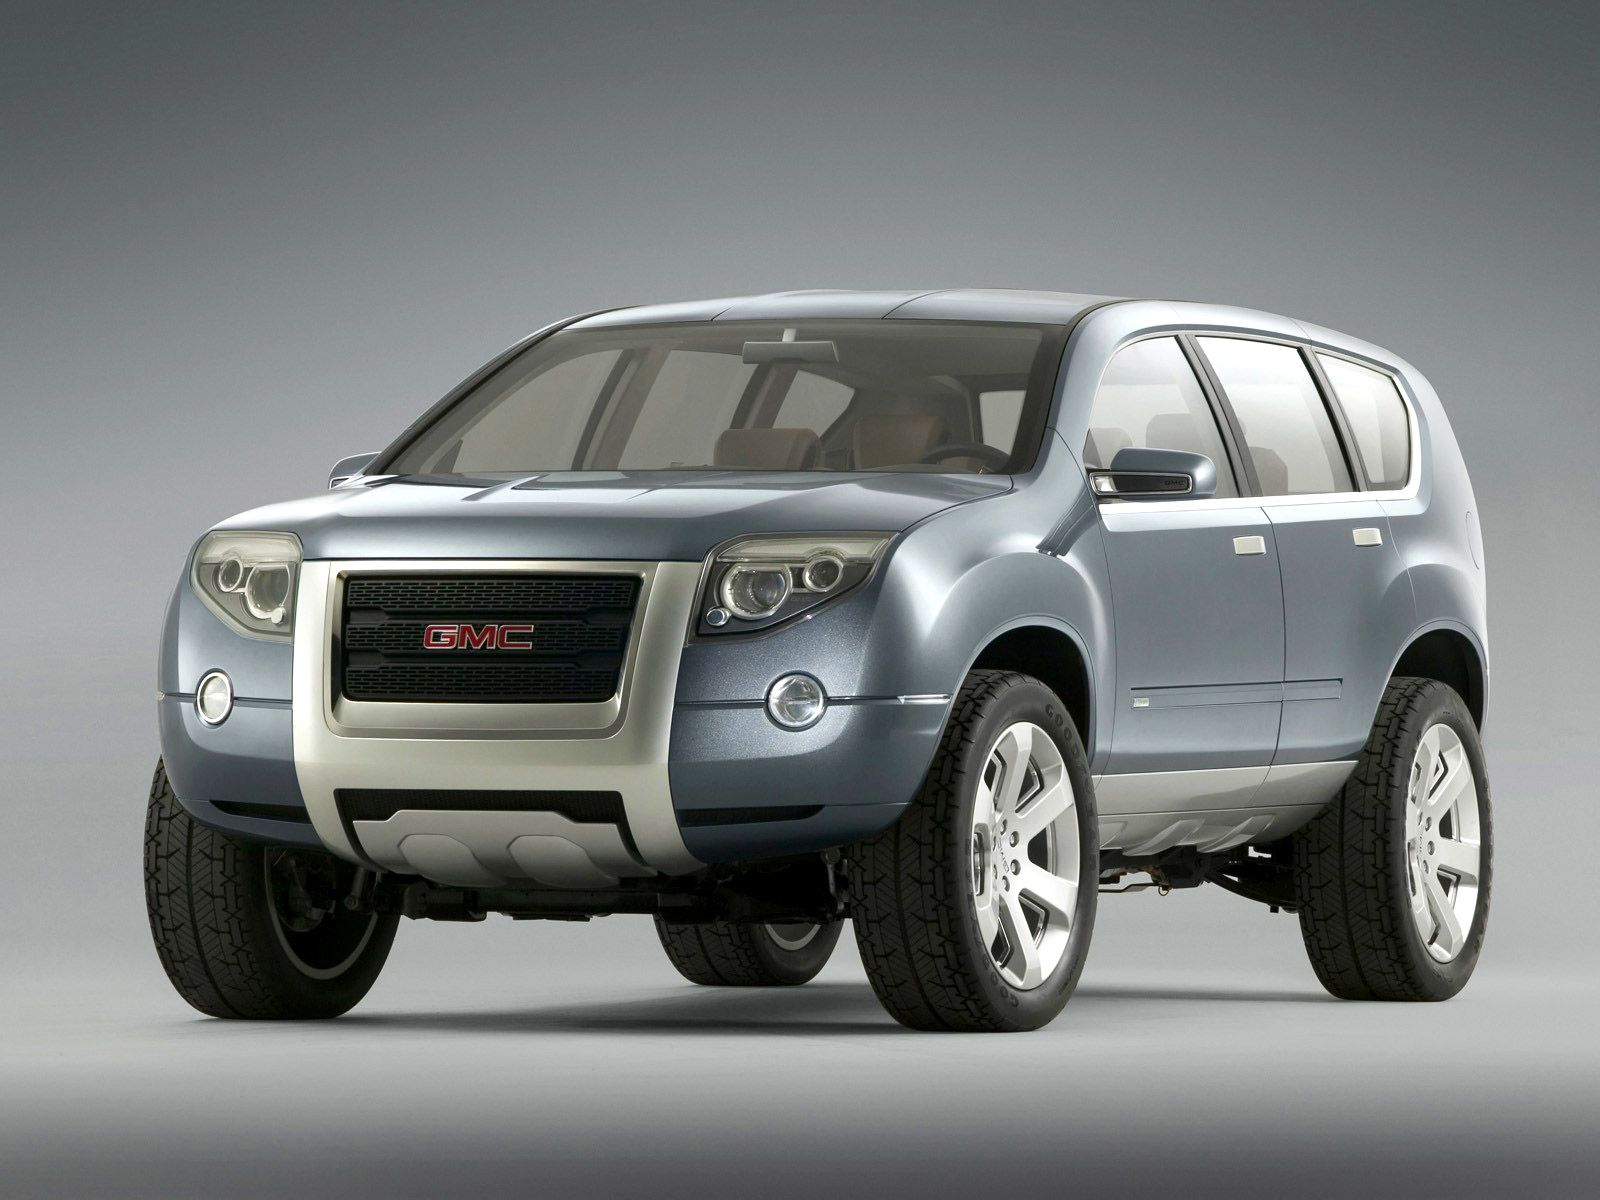 The GMC Graphyte Hybrid is a GMC Truckbranded concept car